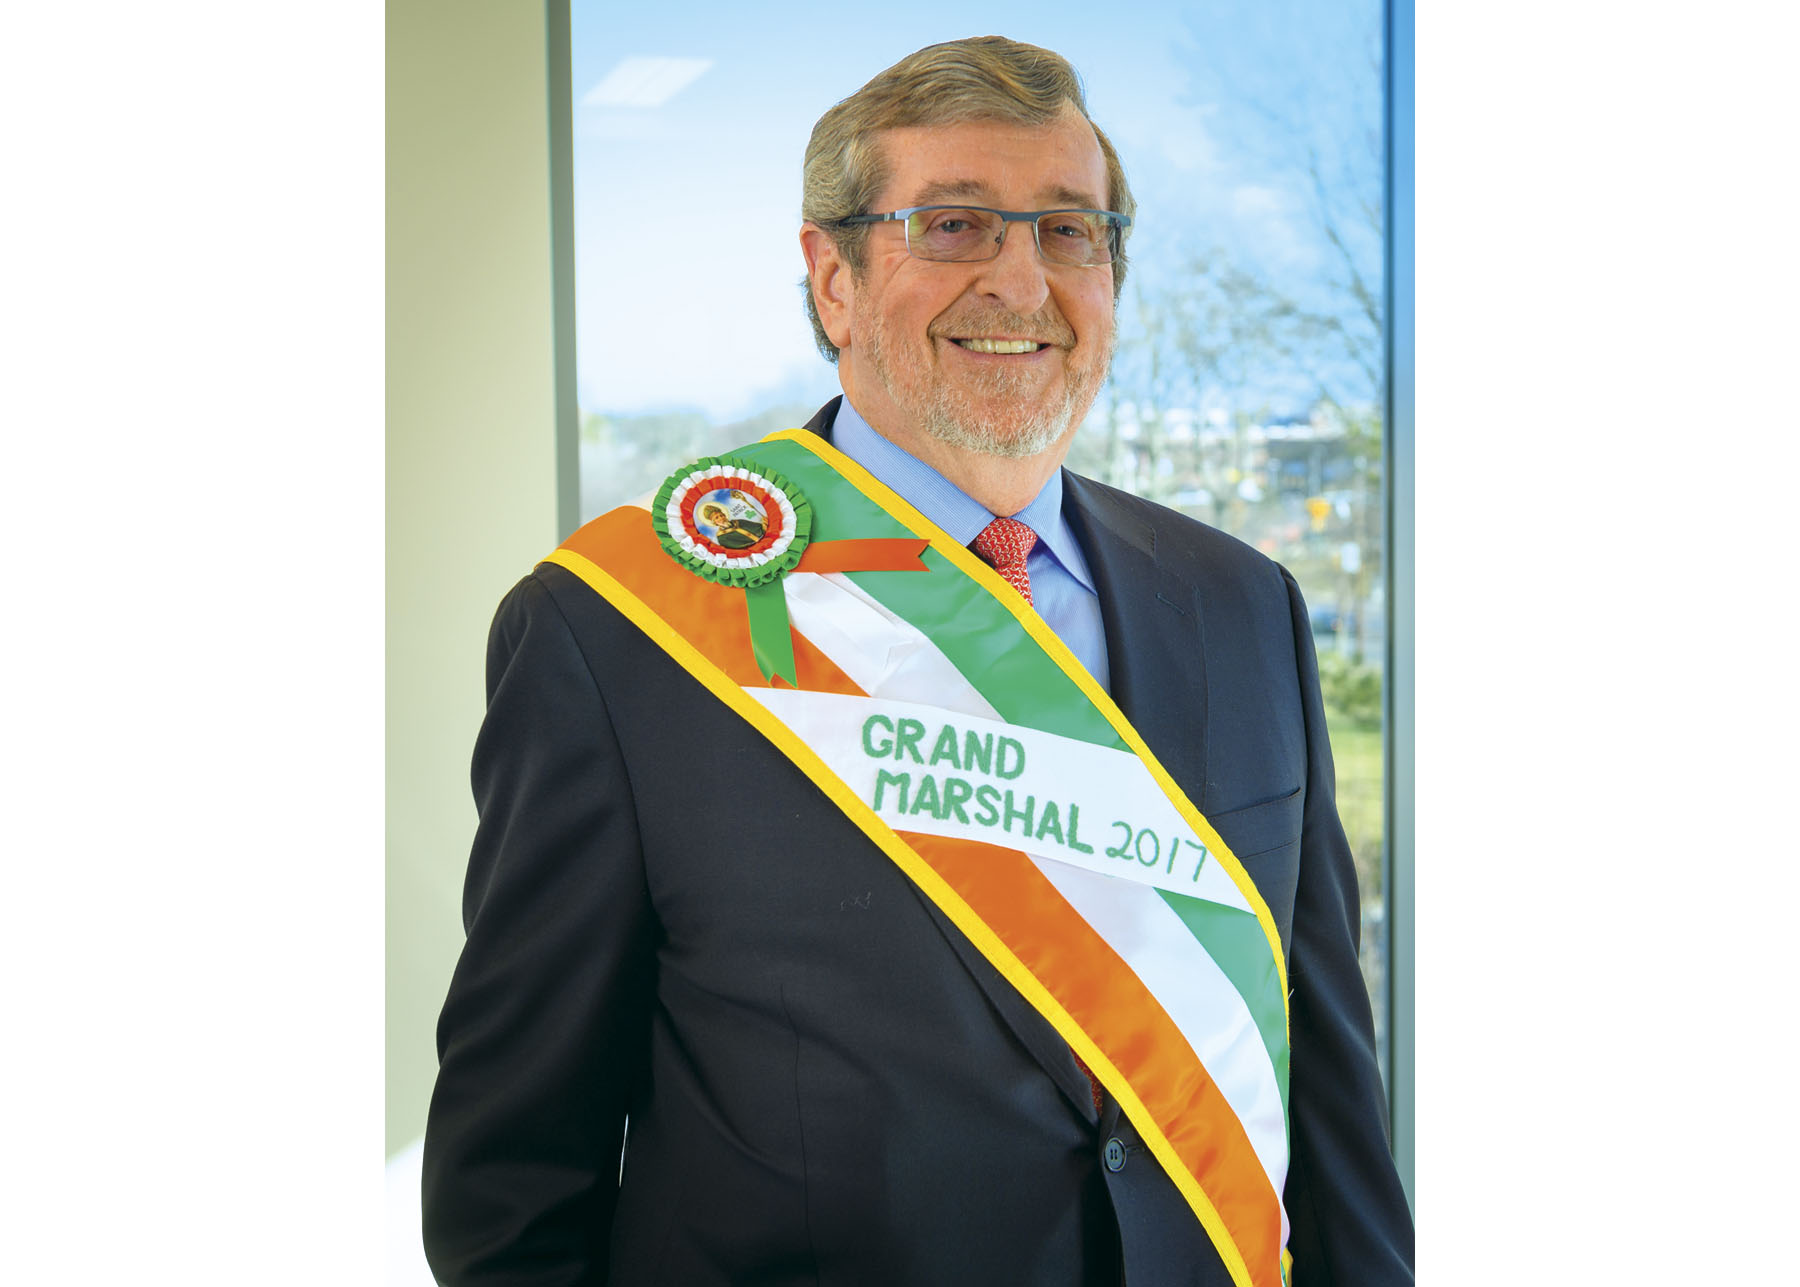 Michael Dowling is the 2017 New York City St. Patrick's Day Parade Grand Marshal.